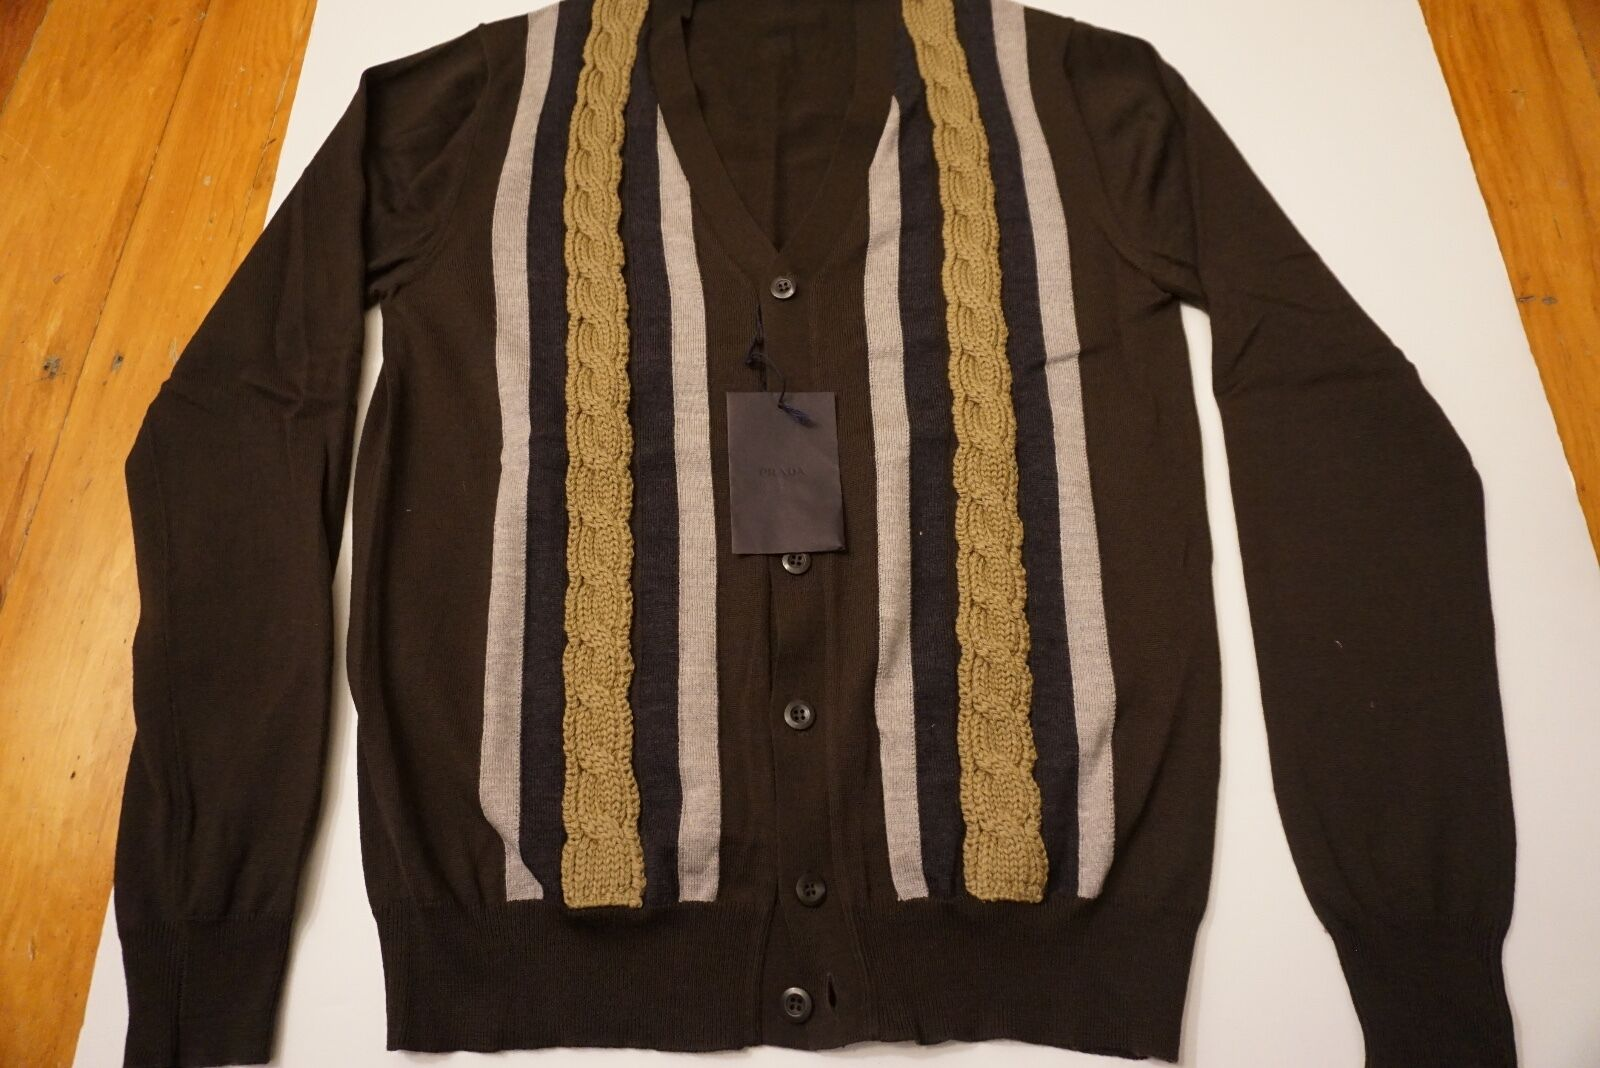 New Men Prada Miu Braun Cardigan Sweather sz M (50) from Saks Neiman Marcus 795